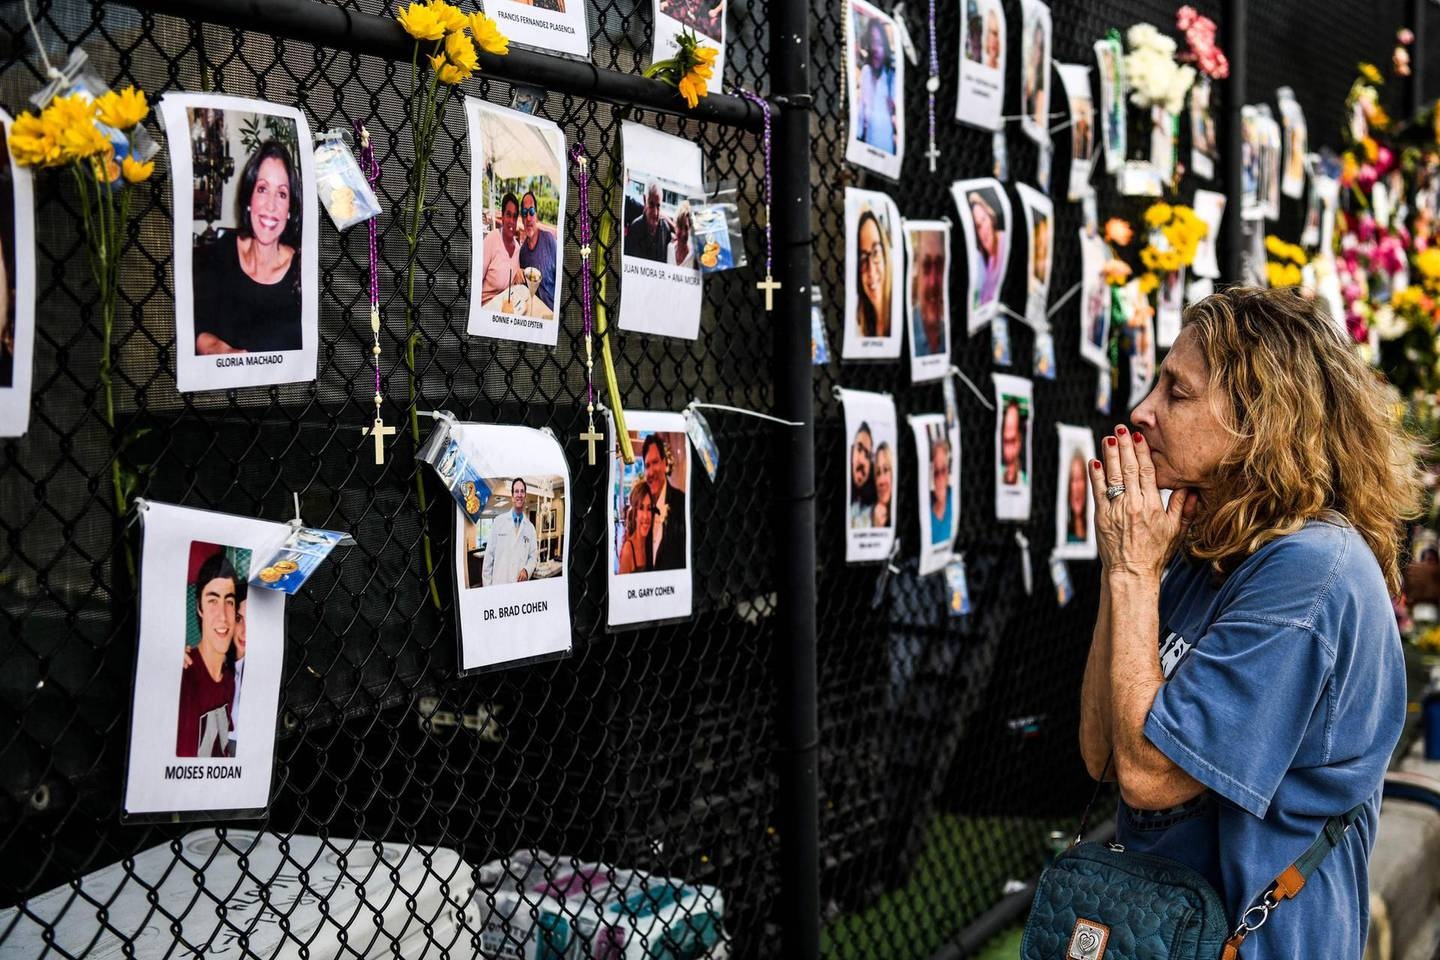 TOPSHOT - A woman prays in front of photos at the makeshift memorial for the victims of the building collapse, near the site of the accident in Surfside, Florida, north of Miami Beach on June 27, 2021. The death toll after the collapse of a Florida apartment tower has risen to nine, officials said Sunday, with more than 150 people still missing and their weary families waiting more than three days afterwards for information as to their fate. The outlook grew more and more grim by the hour, however, as the slow rescue operation, involving workers sorting nonstop through the rubble in torrid heat and high humidity, carried on.  / AFP / CHANDAN KHANNA